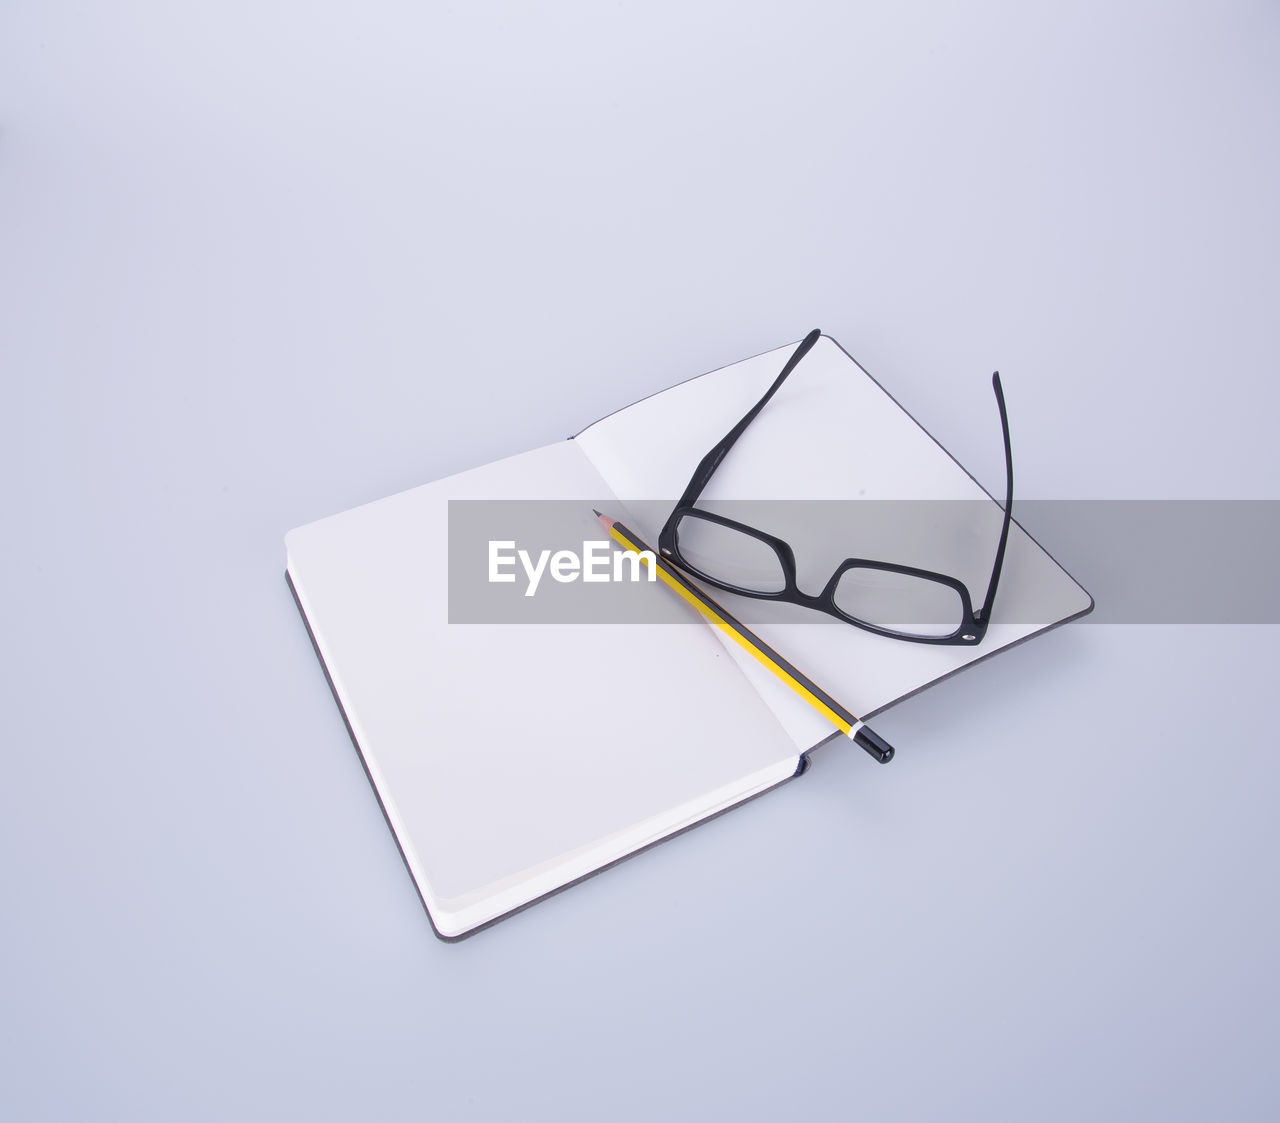 still life, studio shot, copy space, indoors, white background, no people, paper, white color, high angle view, close-up, cut out, book, note pad, table, office supply, eyeglasses, mobile phone, pencil, wireless technology, publication, blank